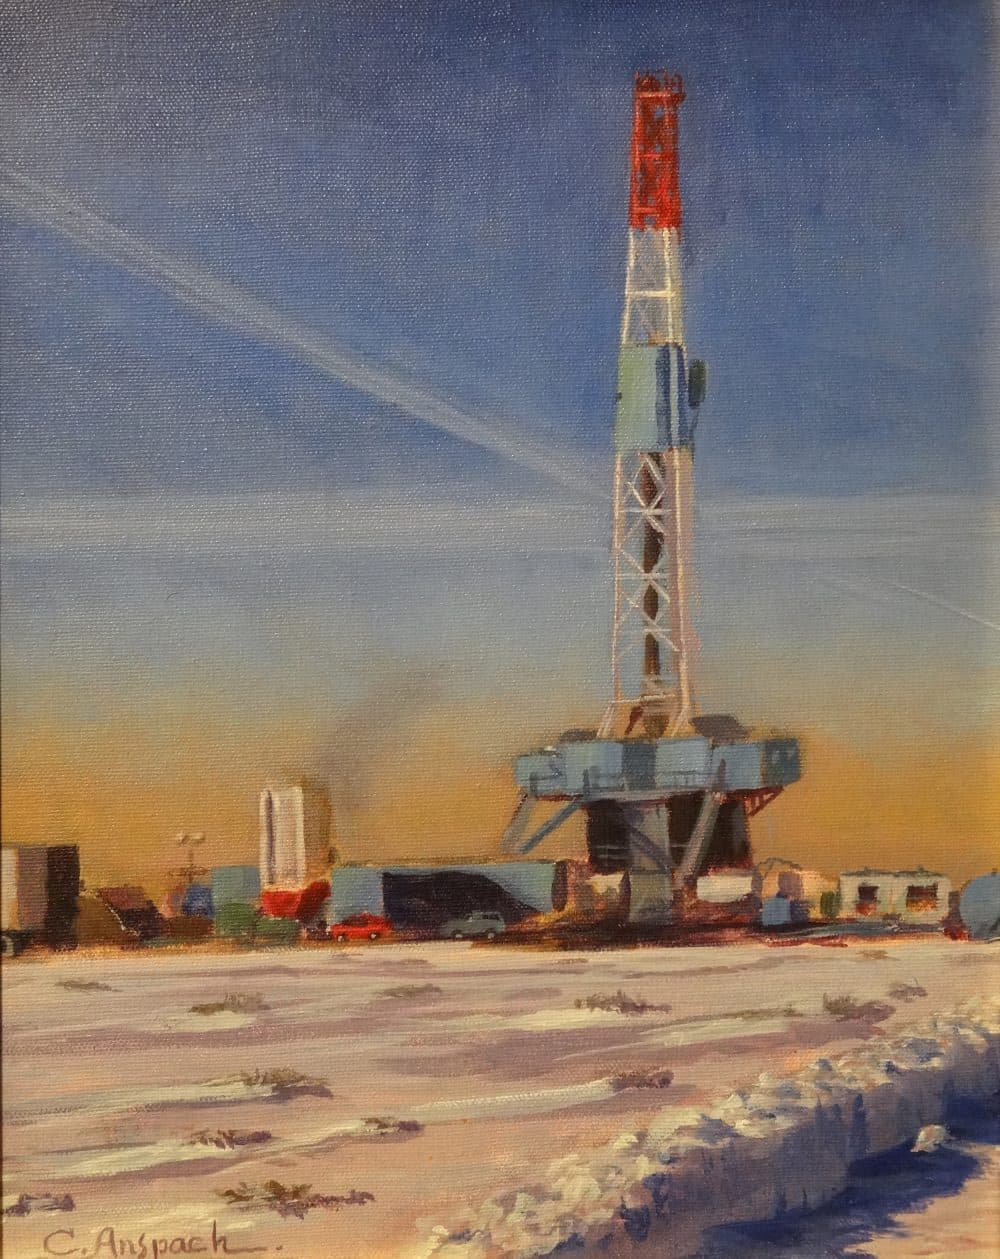 Patriot 31, an industrial landscape from the Pinedale Anticline. Oil on canvas, 14 x 11 inches.